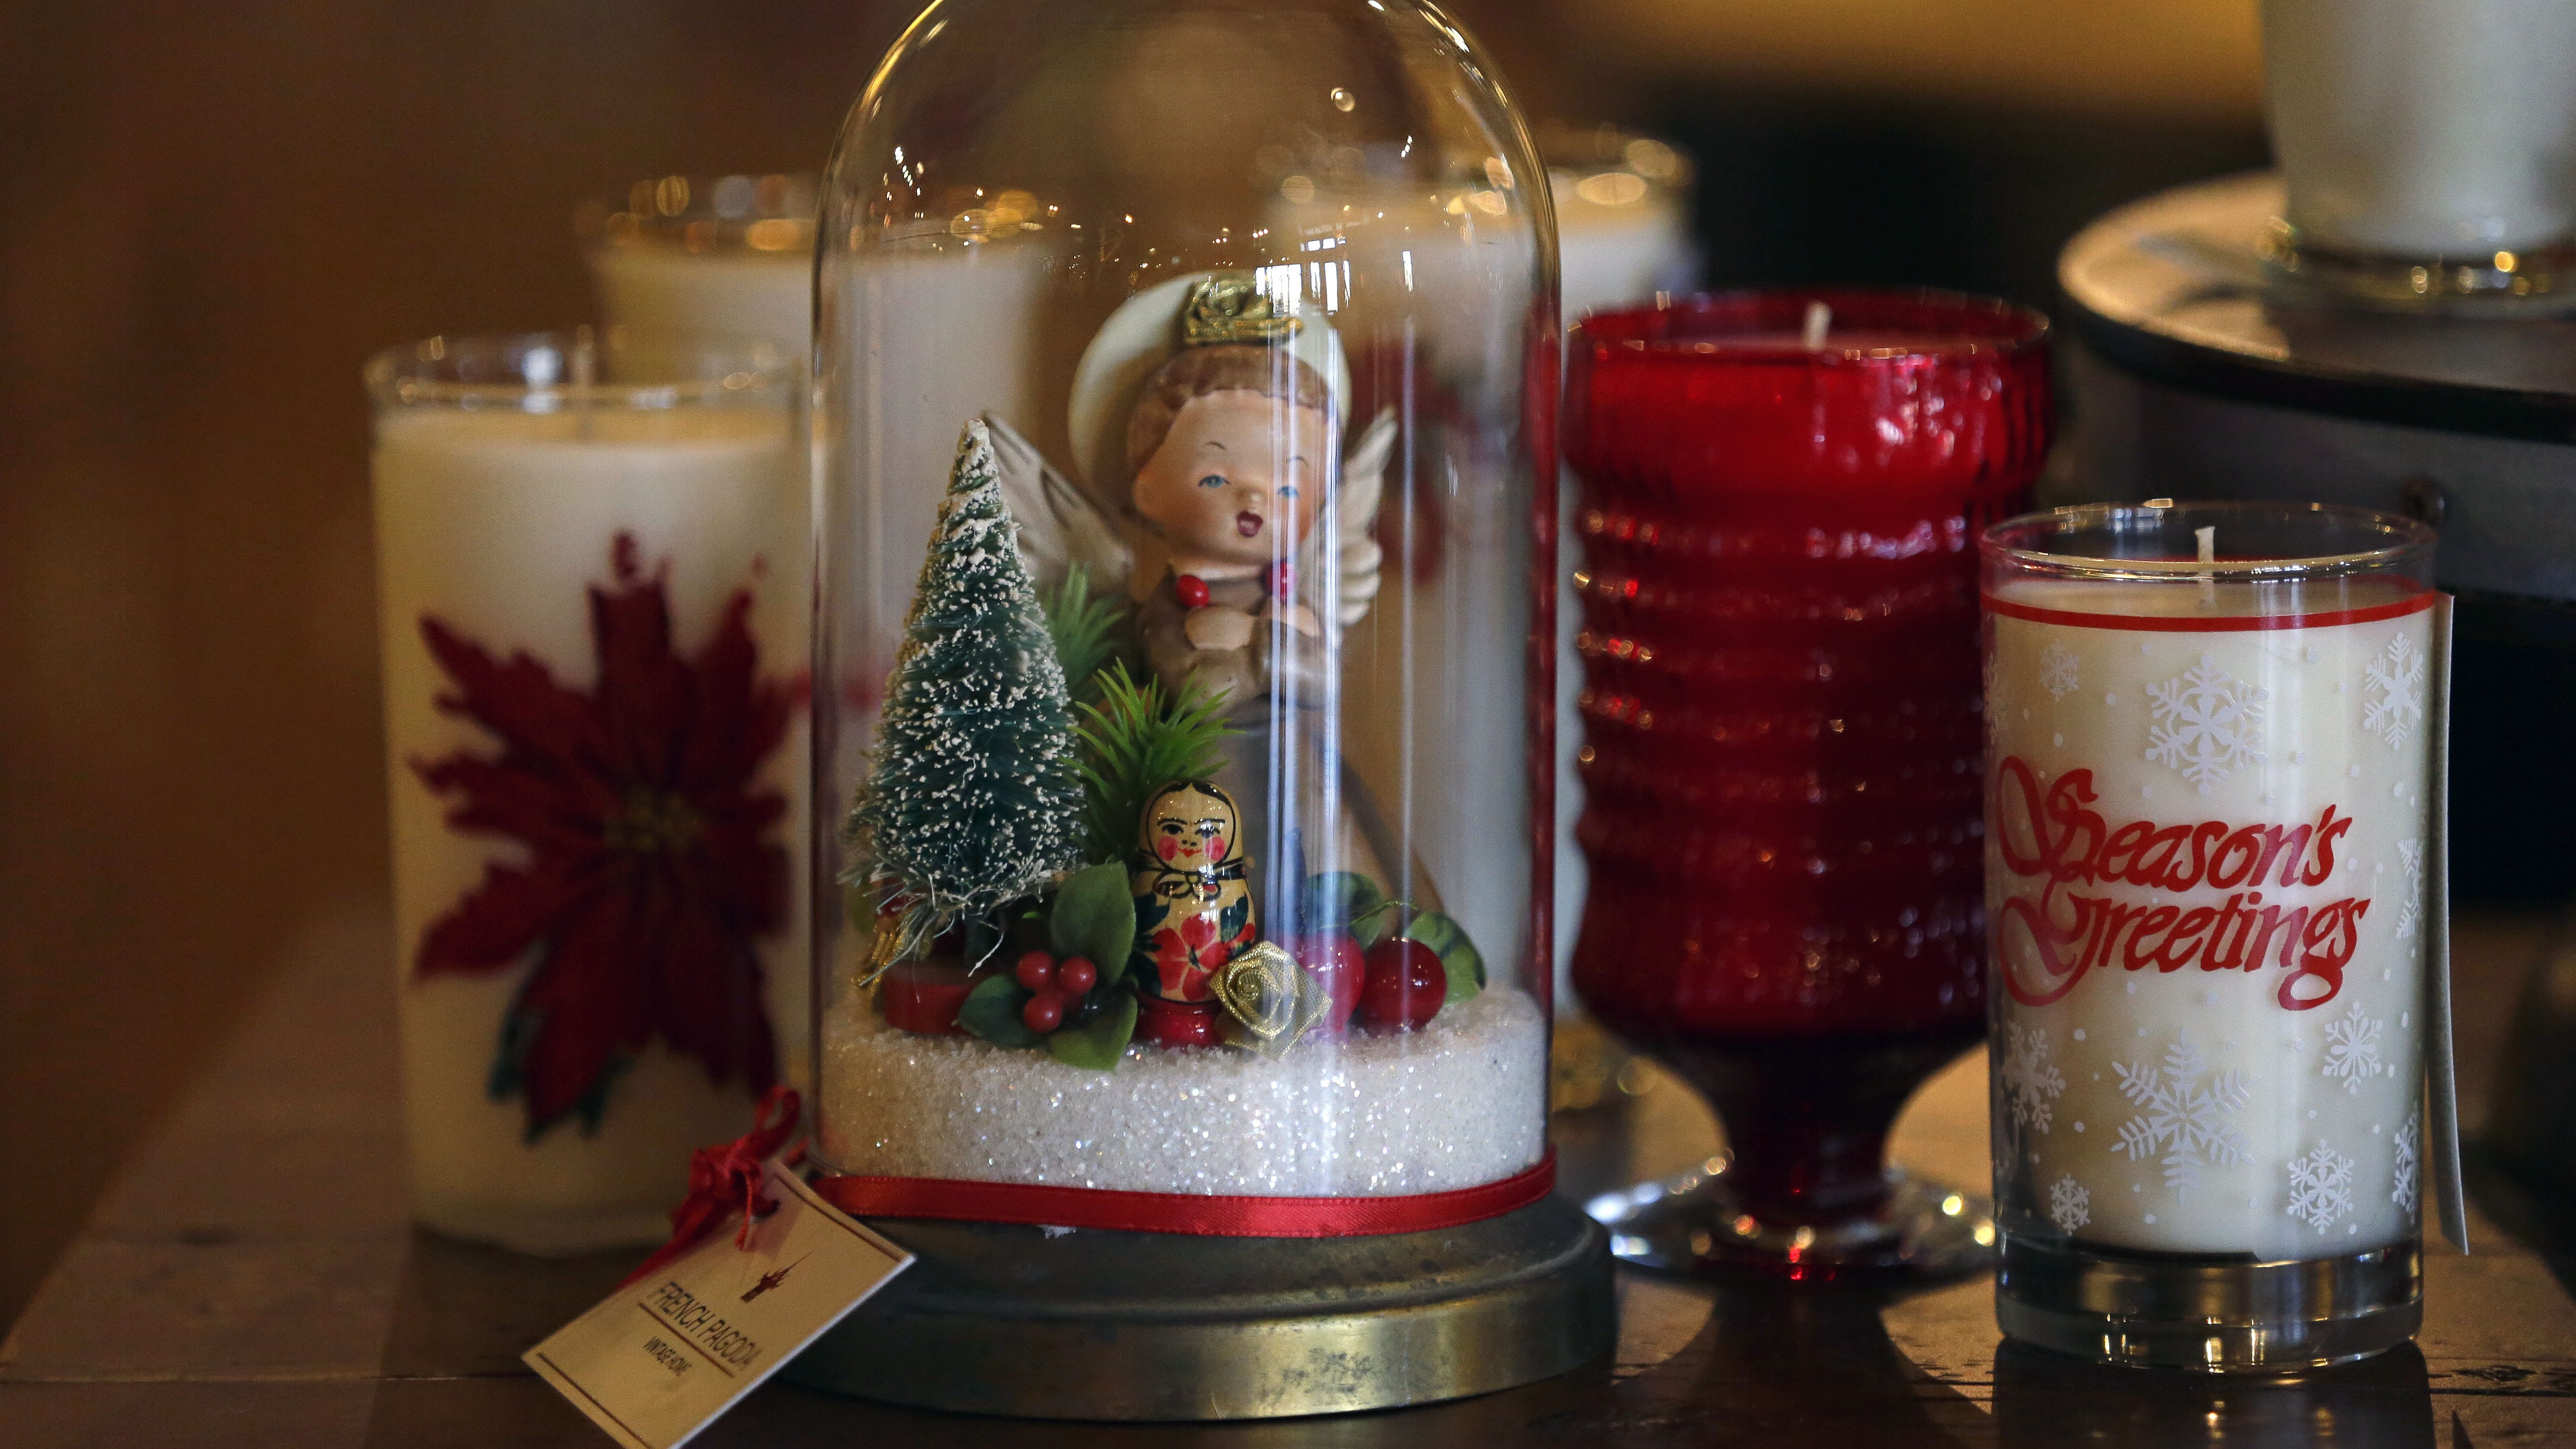 Gift guide to Appleton area shops and products for holidays The Buzz